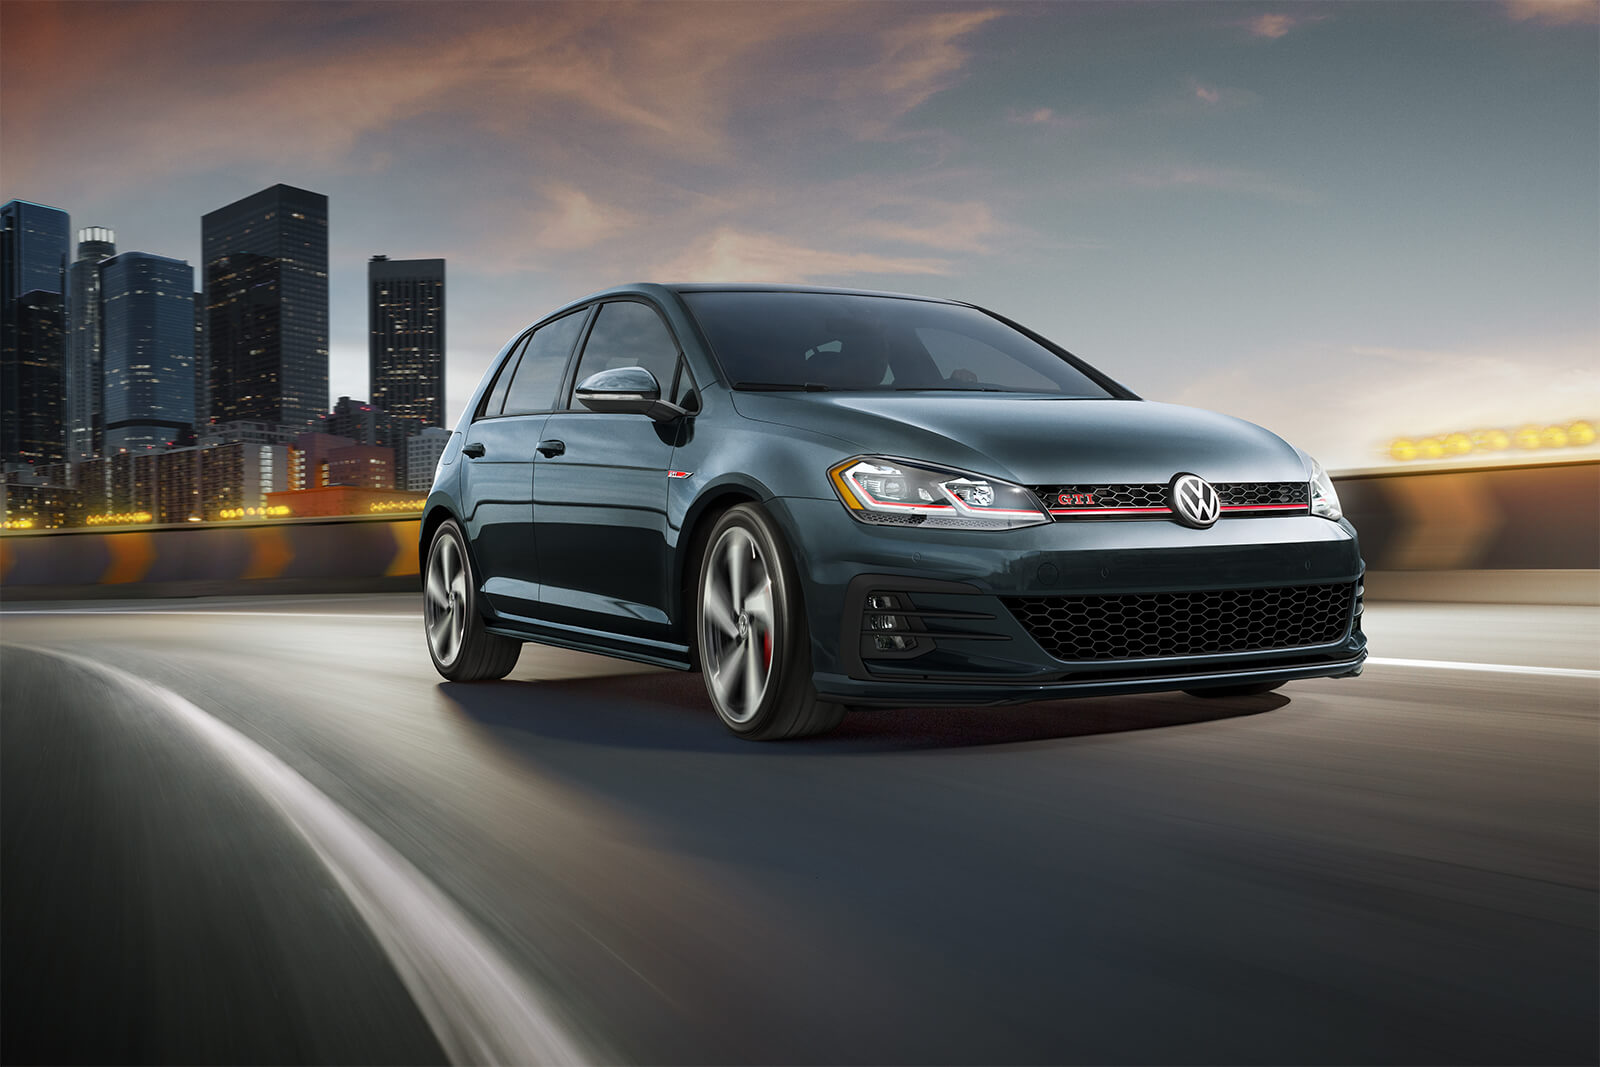 Lease a Volkswagen in Brookfield, WI